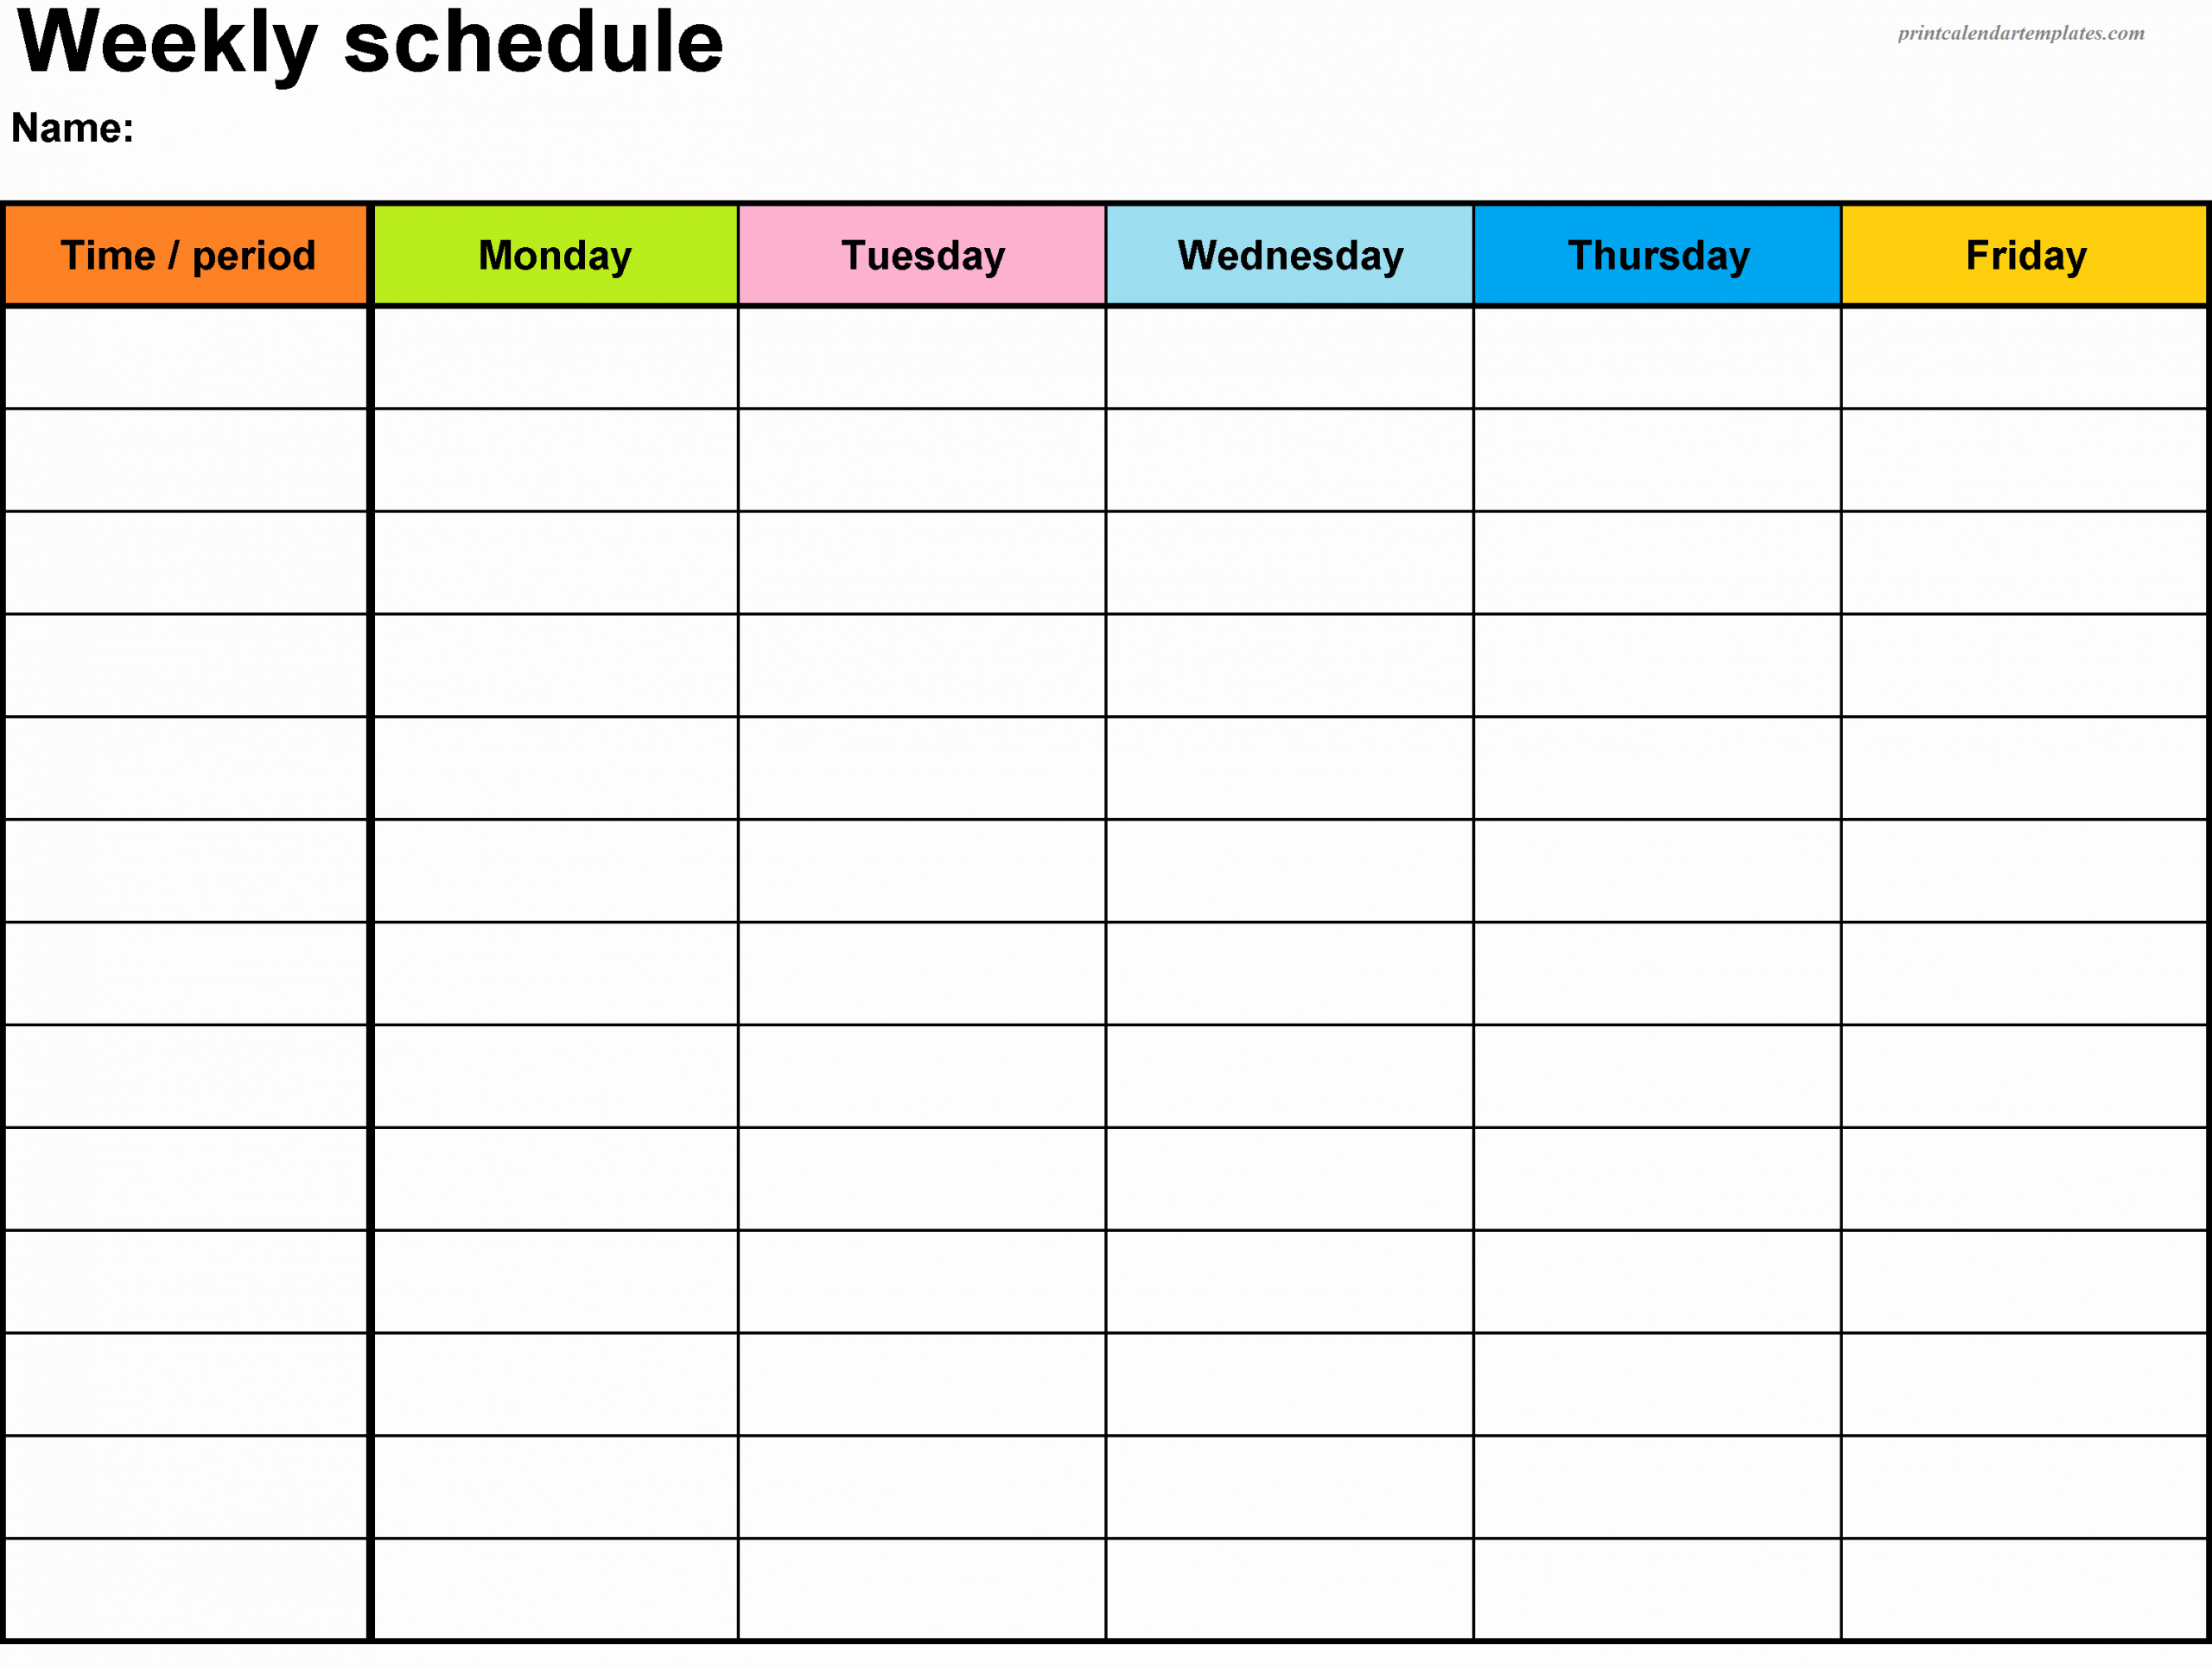 Week Day Schedule Template Beautiful Free Printable Weekly Planner 2018 Templetes